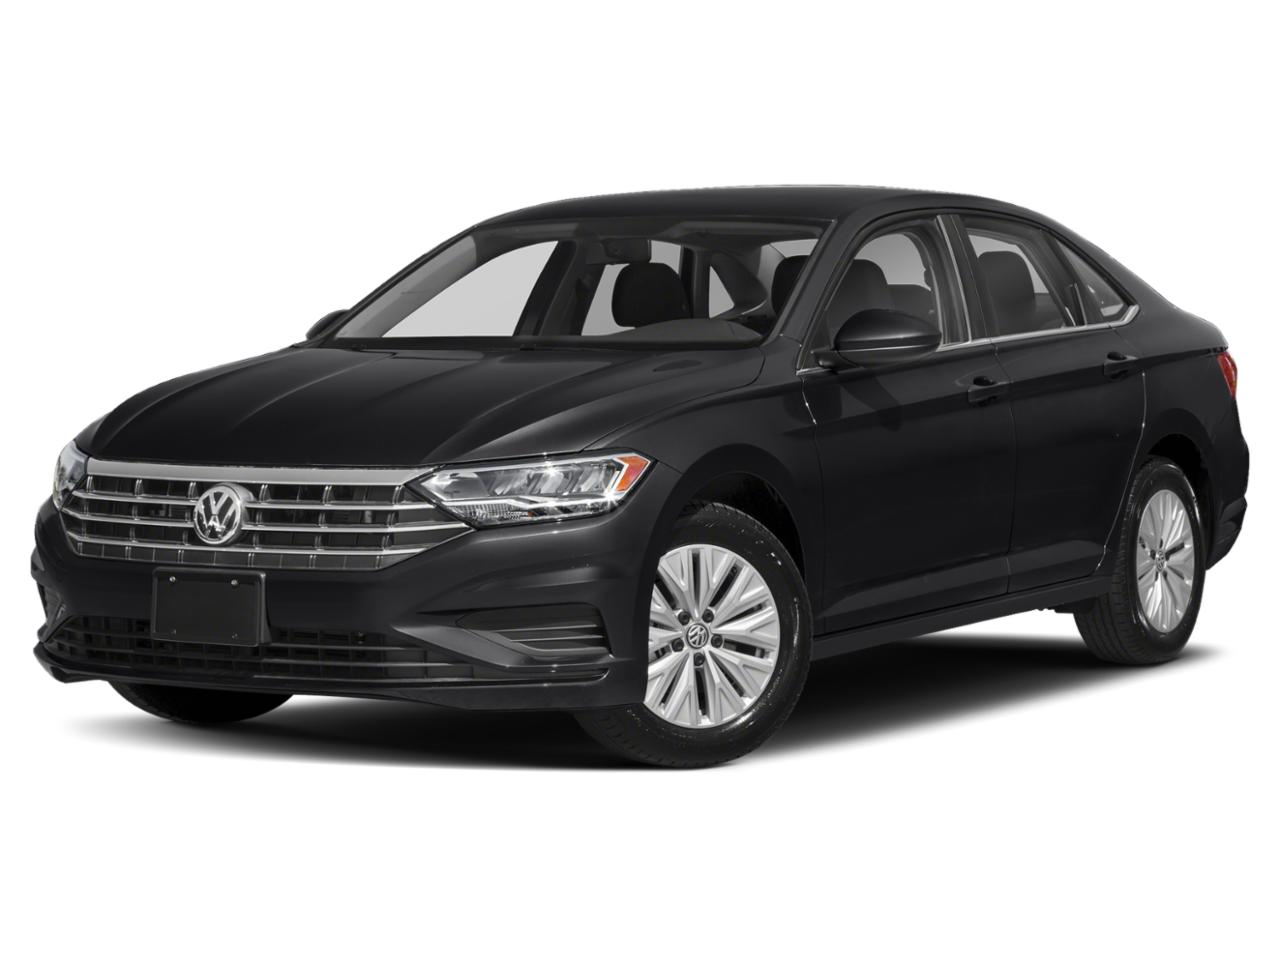 2021 Volkswagen Jetta Vehicle Photo in Oshkosh, WI 54904